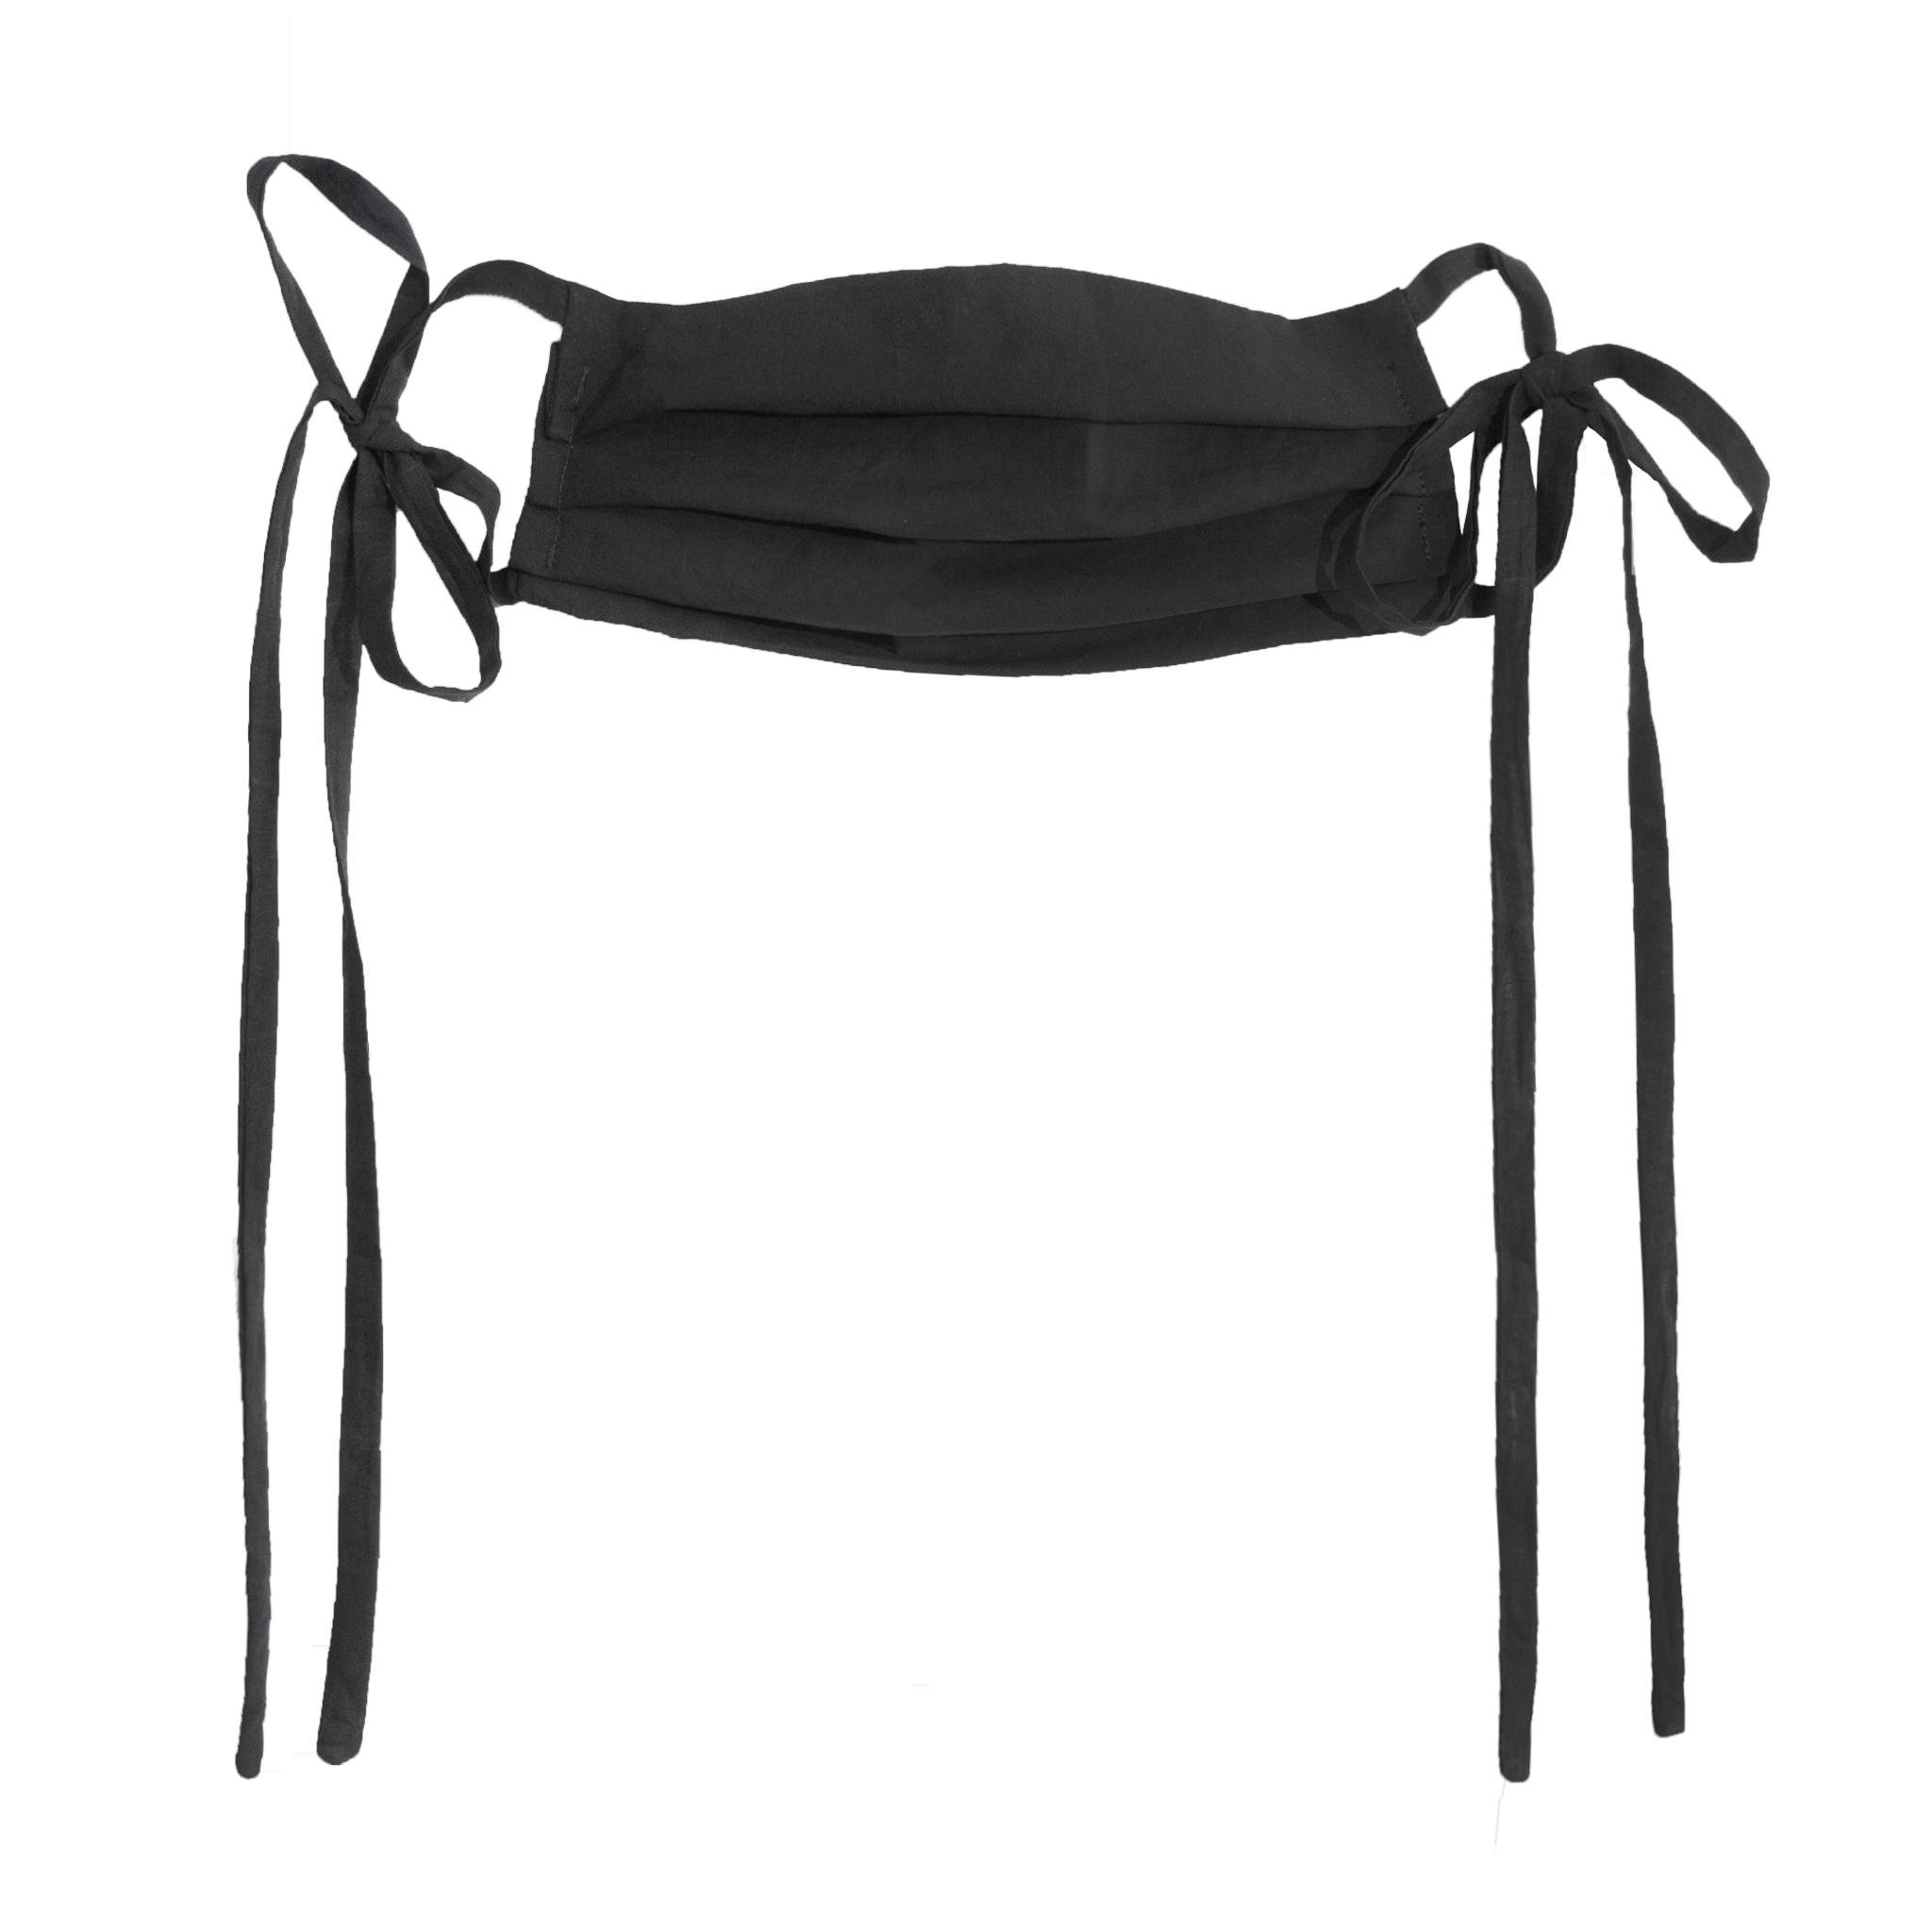 Protective Face Mask Black